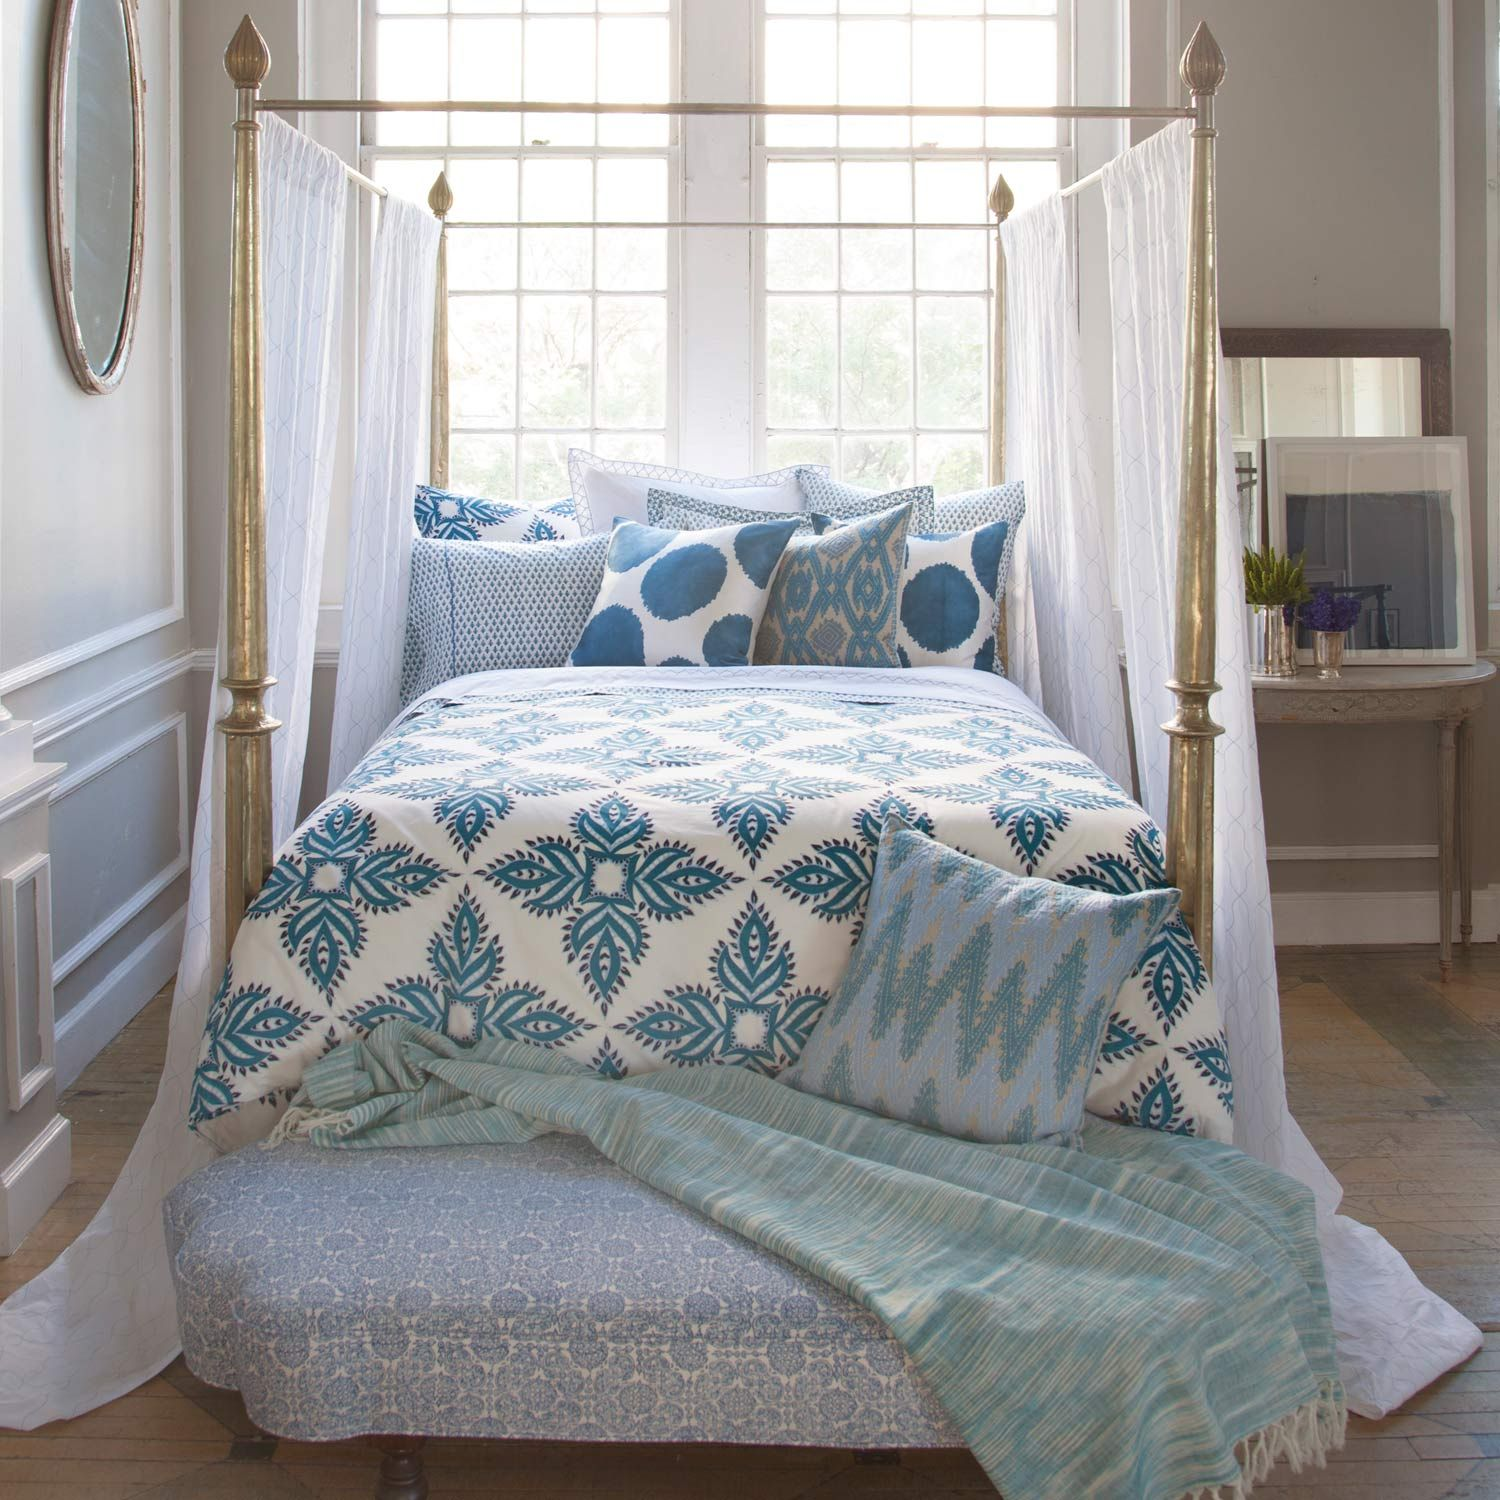 Bedroom Sheer Canopy And Turquoise Bedding By John Robshaw Bed